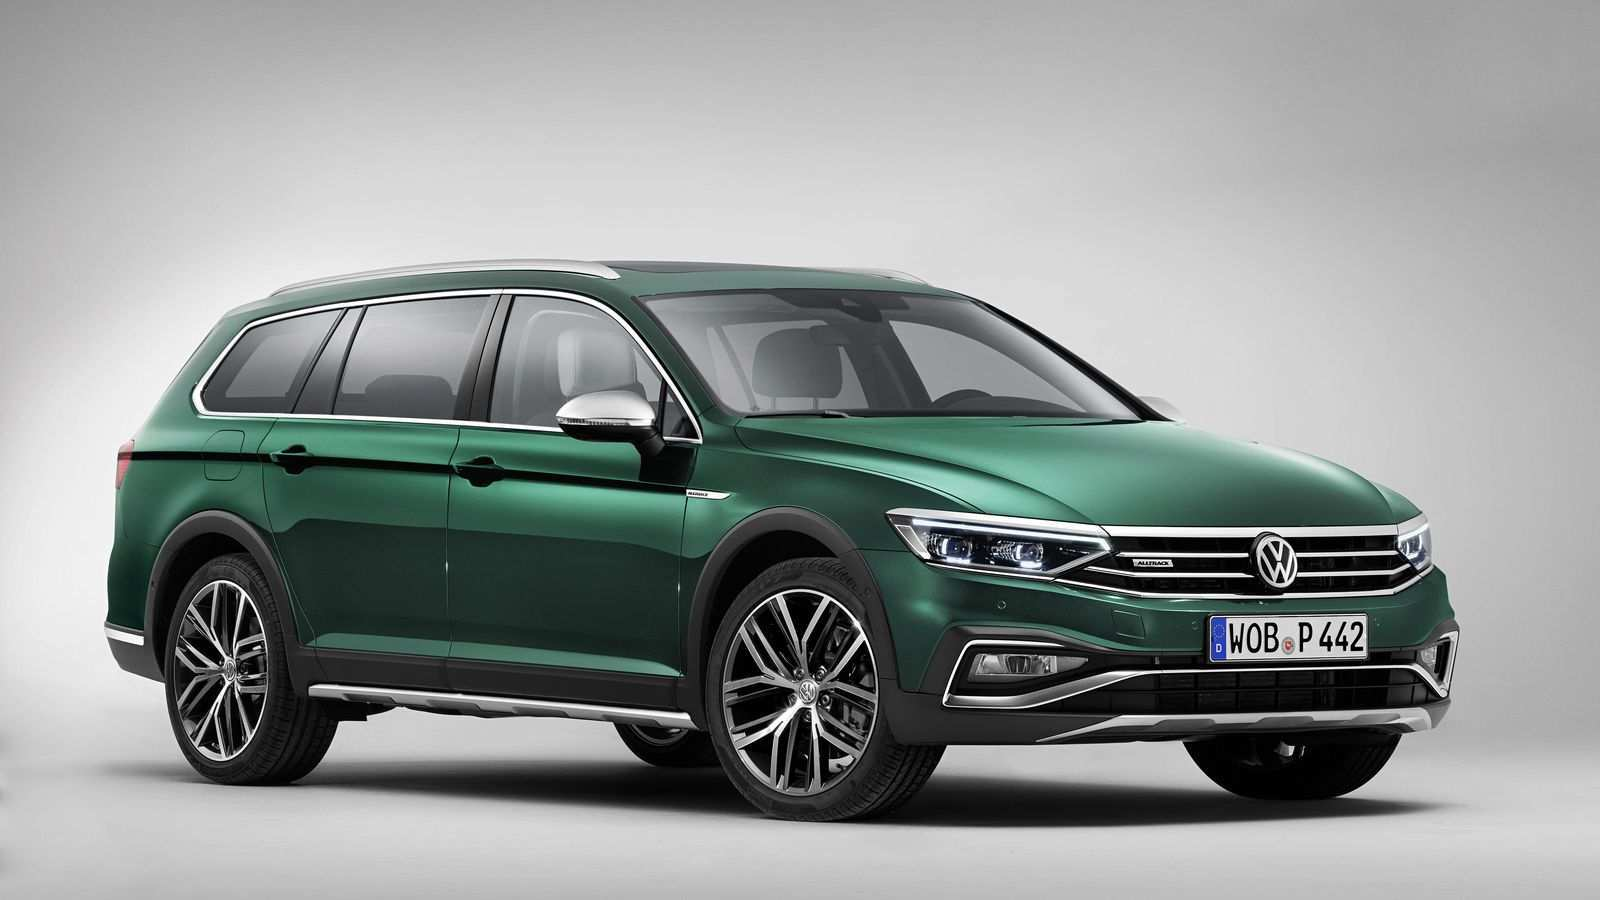 93 A Volkswagen Passat 2020 Europe Release Date And Concept